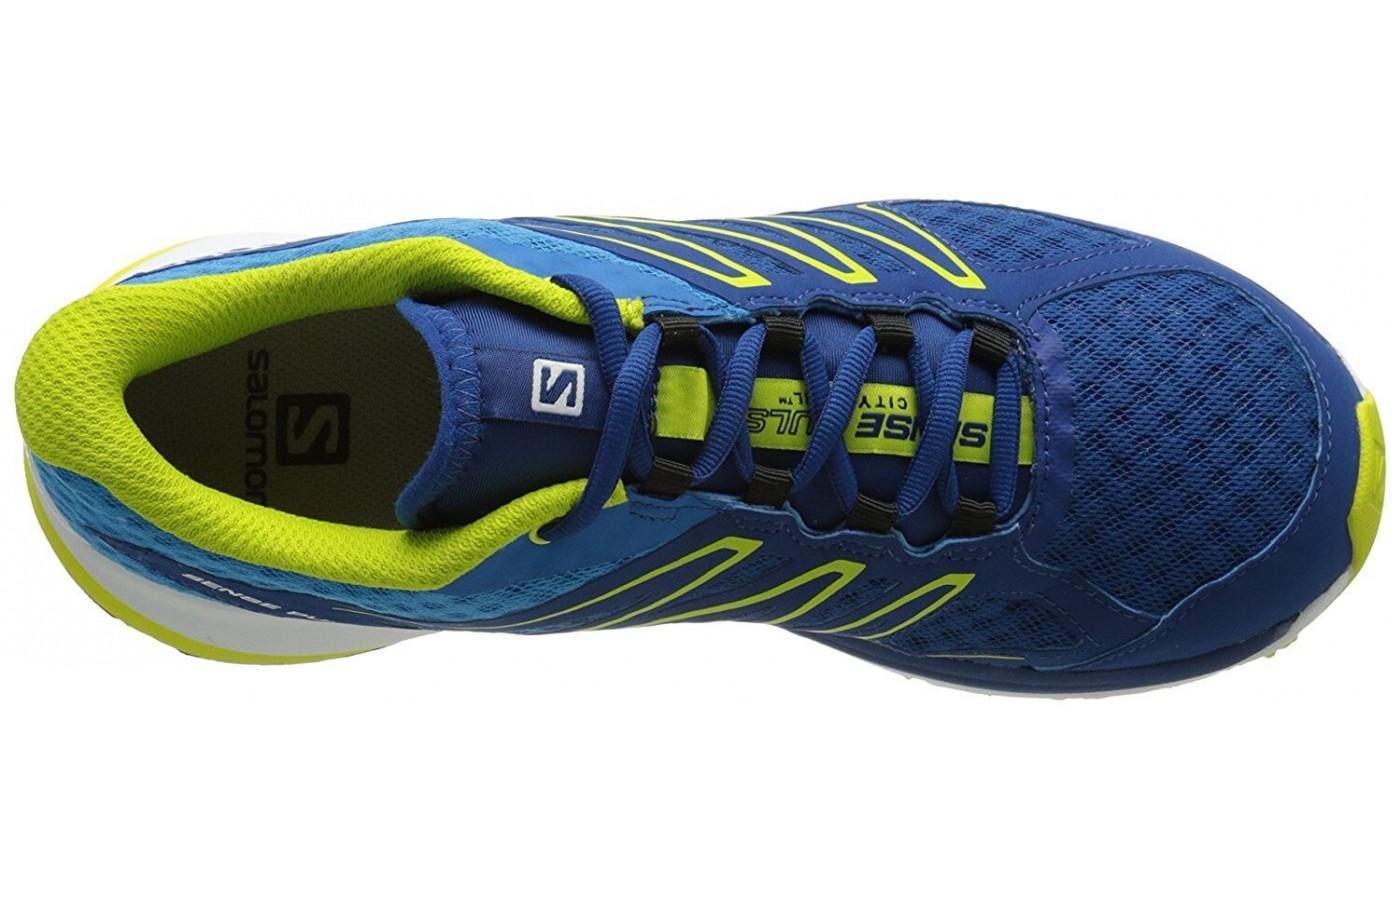 Salomon Sense Pulse features an Endofit interior